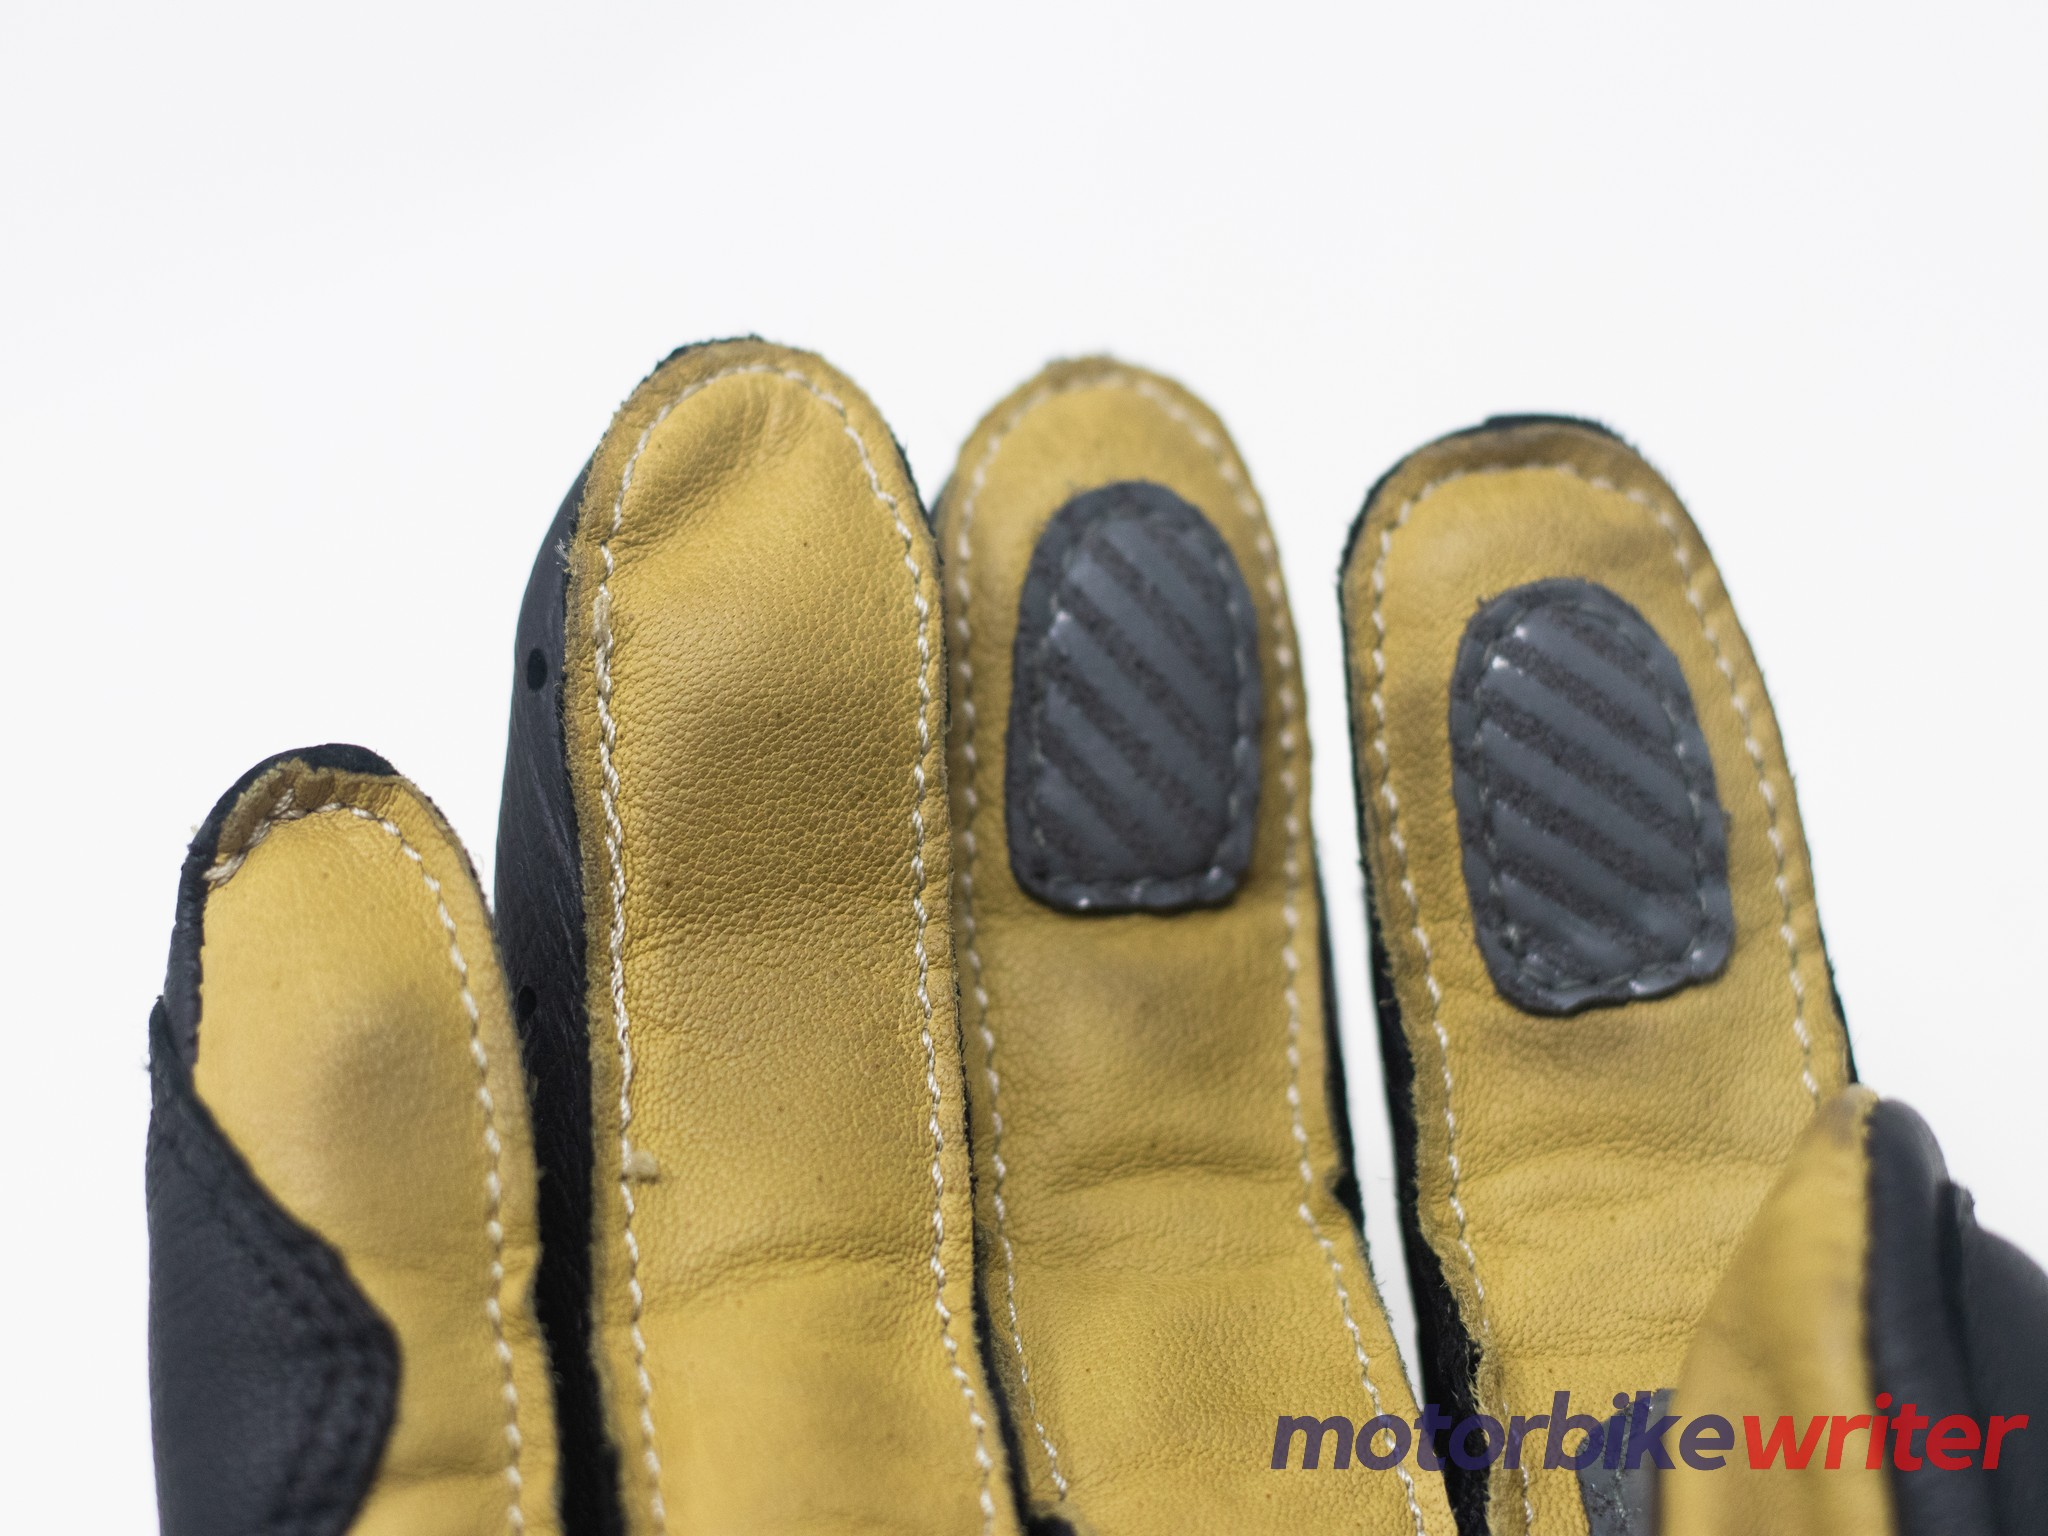 Grip pads stitched onto the fingertips of leather palm glove